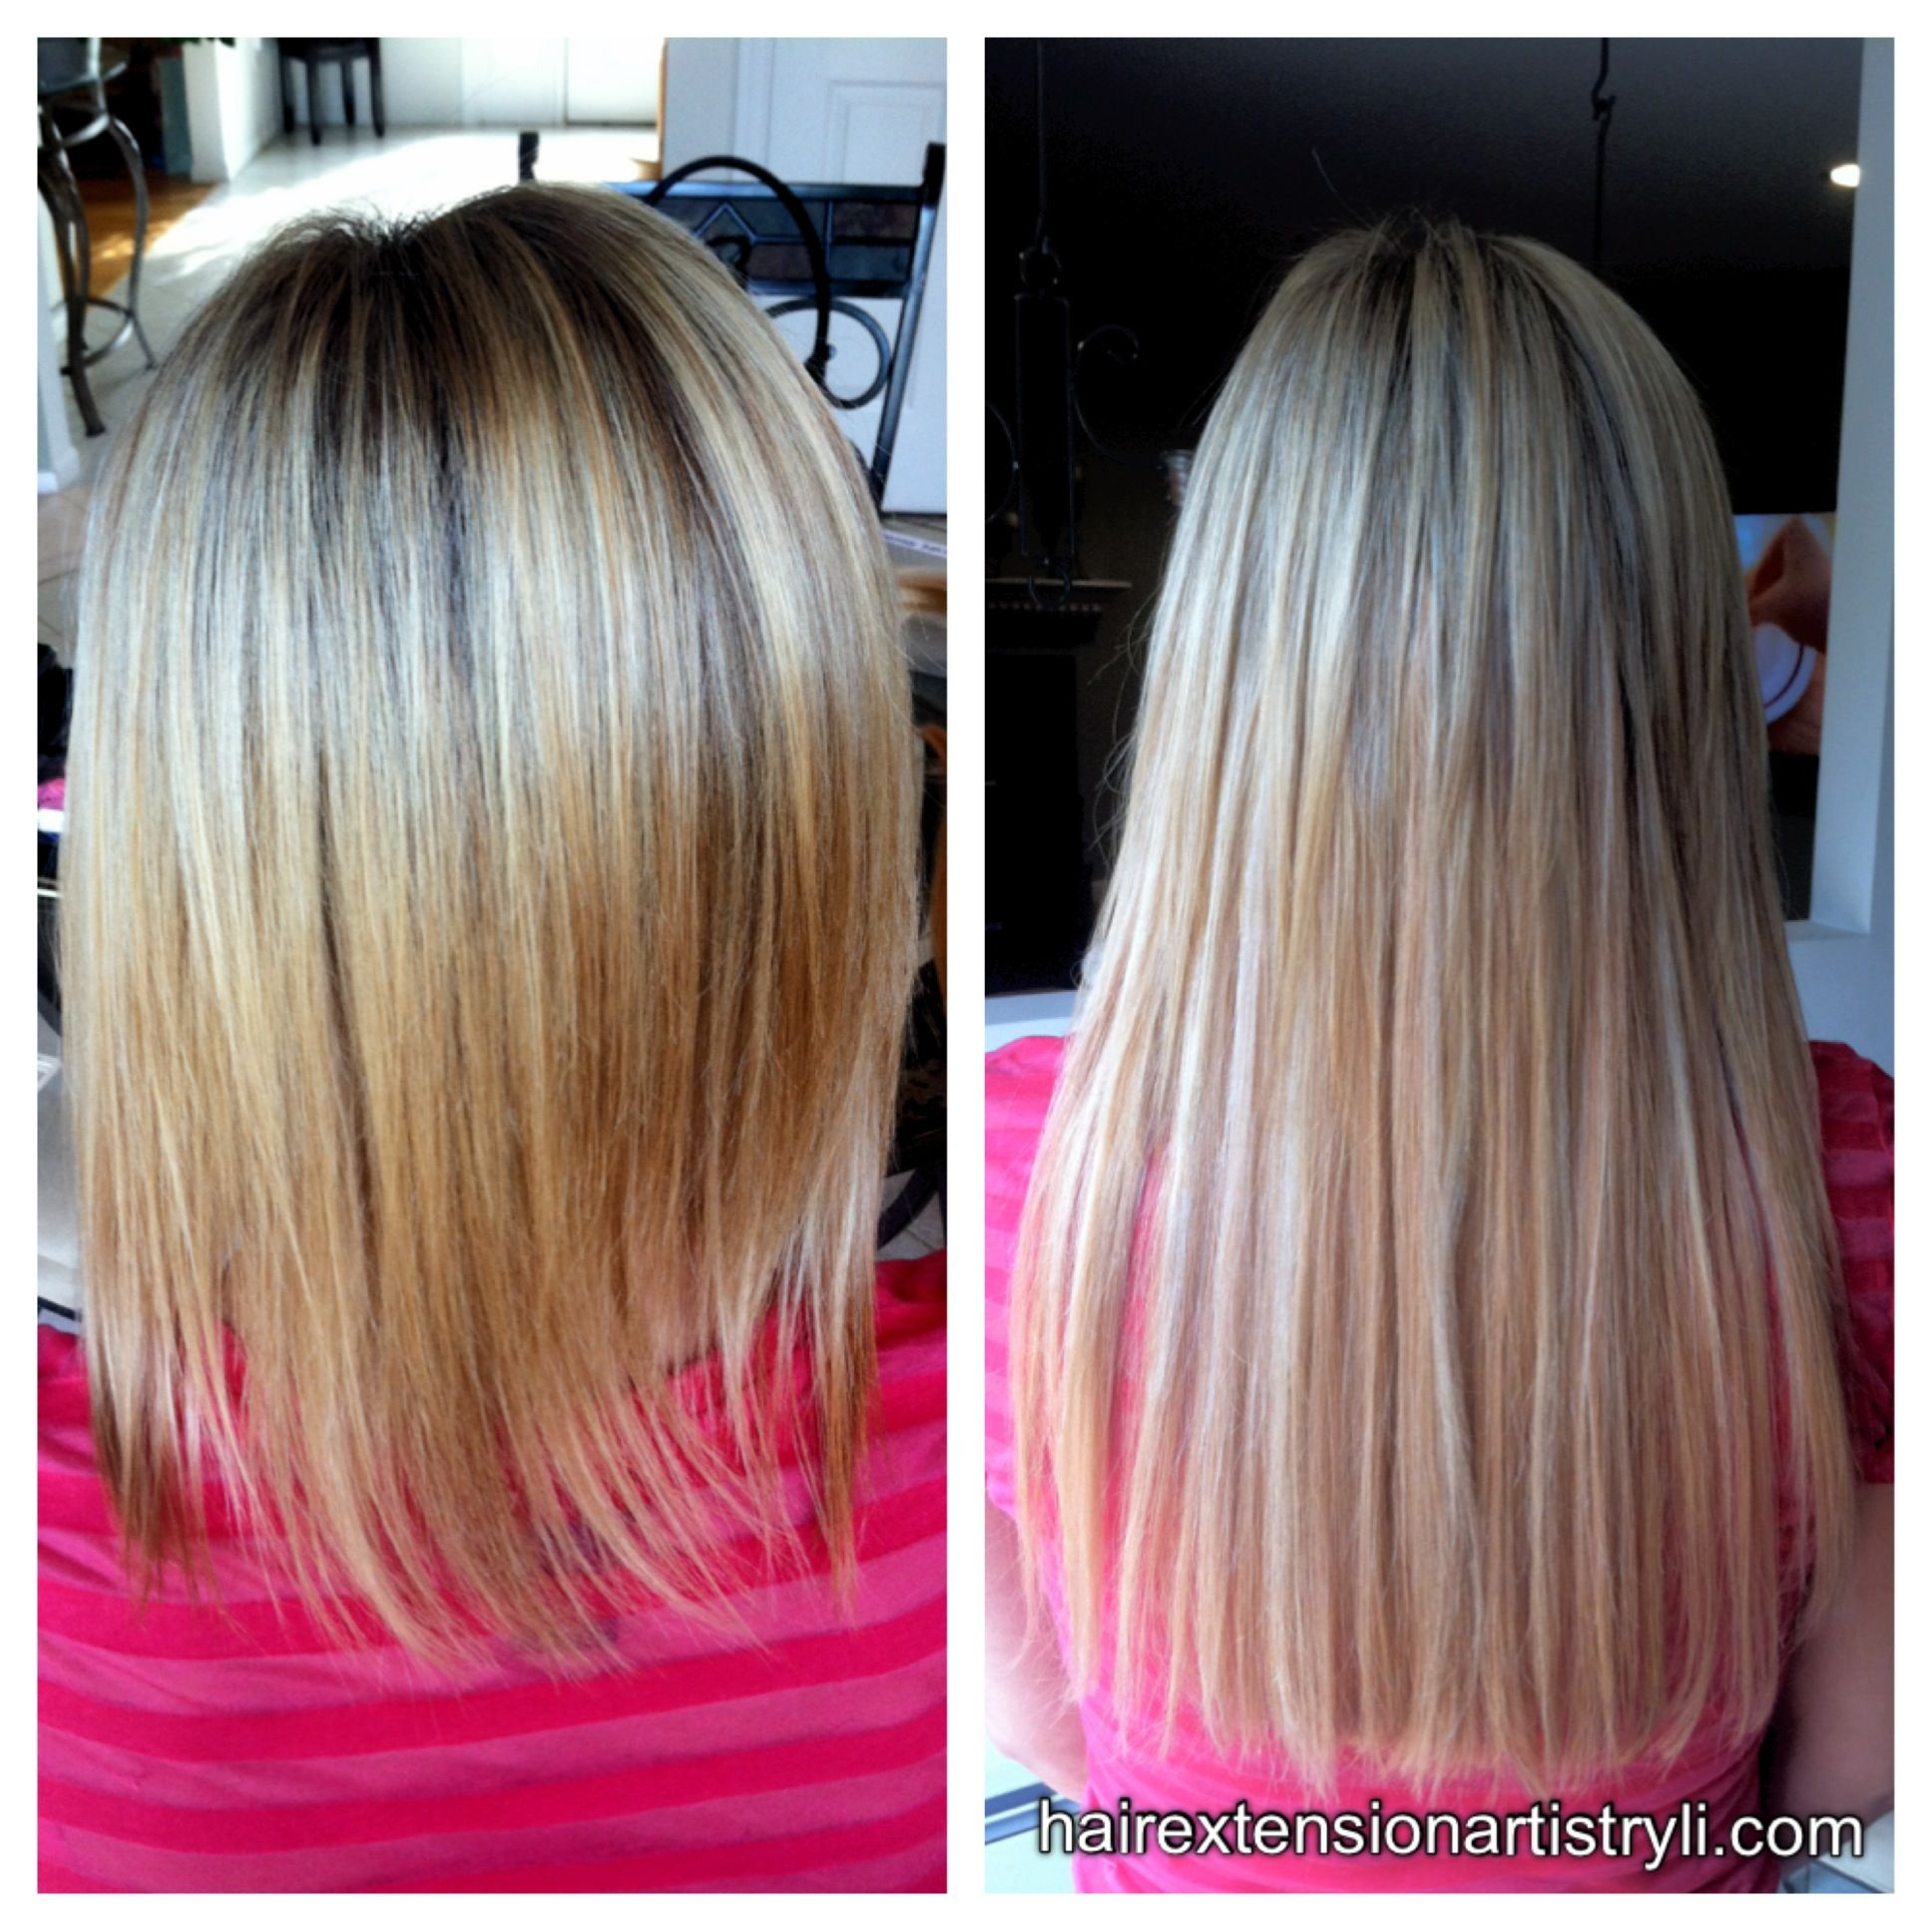 Barbie Doll Makeover With Microbead Hair Extensions Long Island